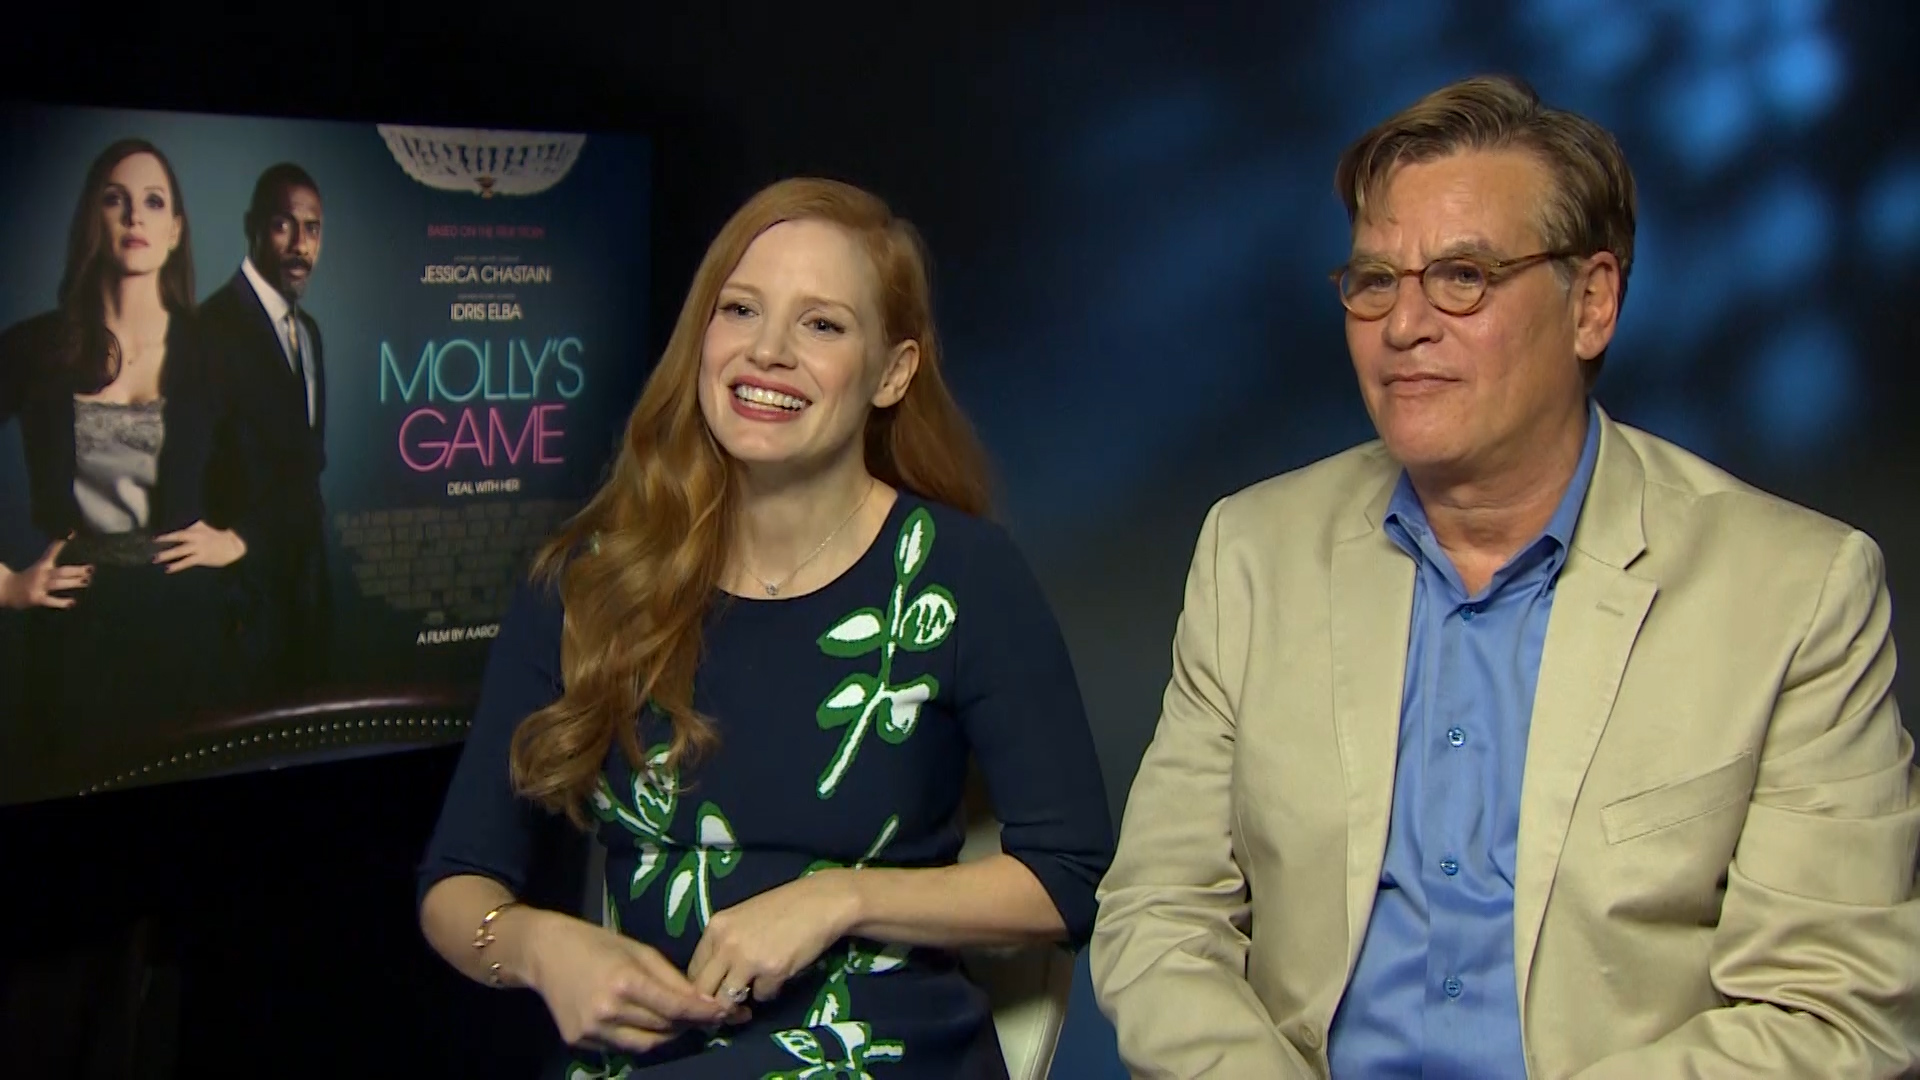 Jessica Chastain Aaron Sorkin Molly's Game Interview